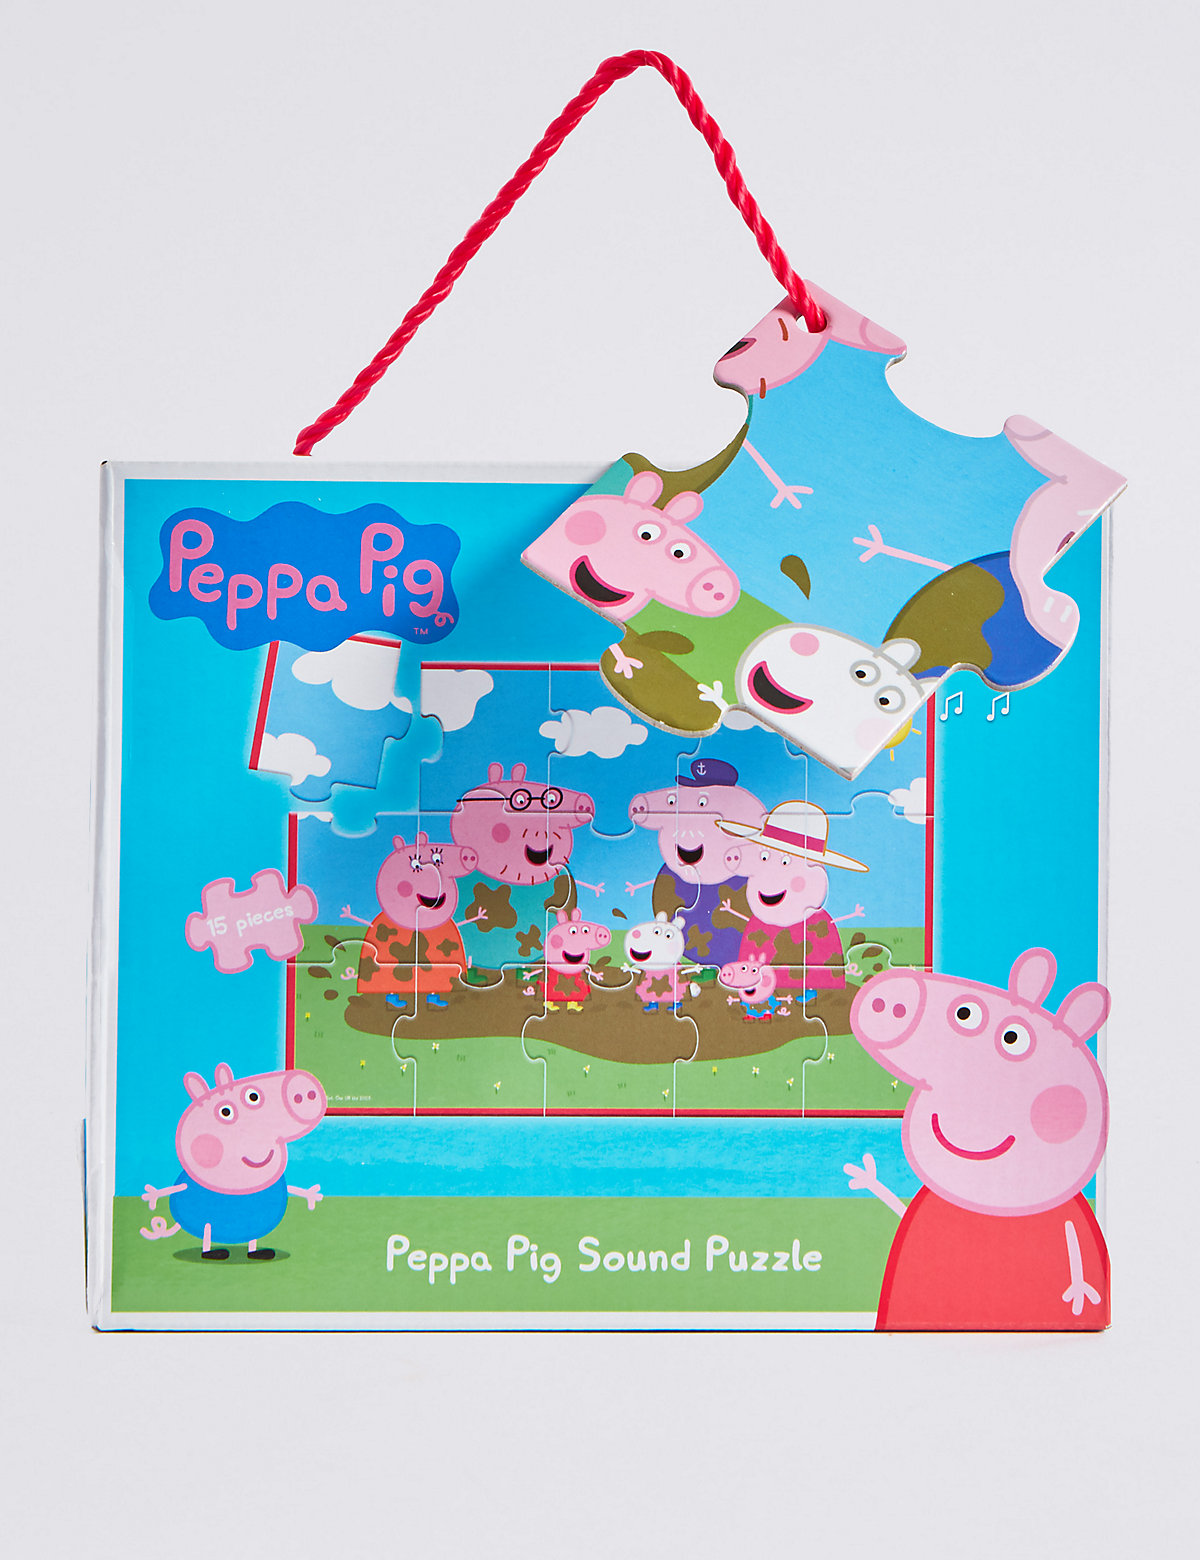 Peppa PigTM Sound Puzzle